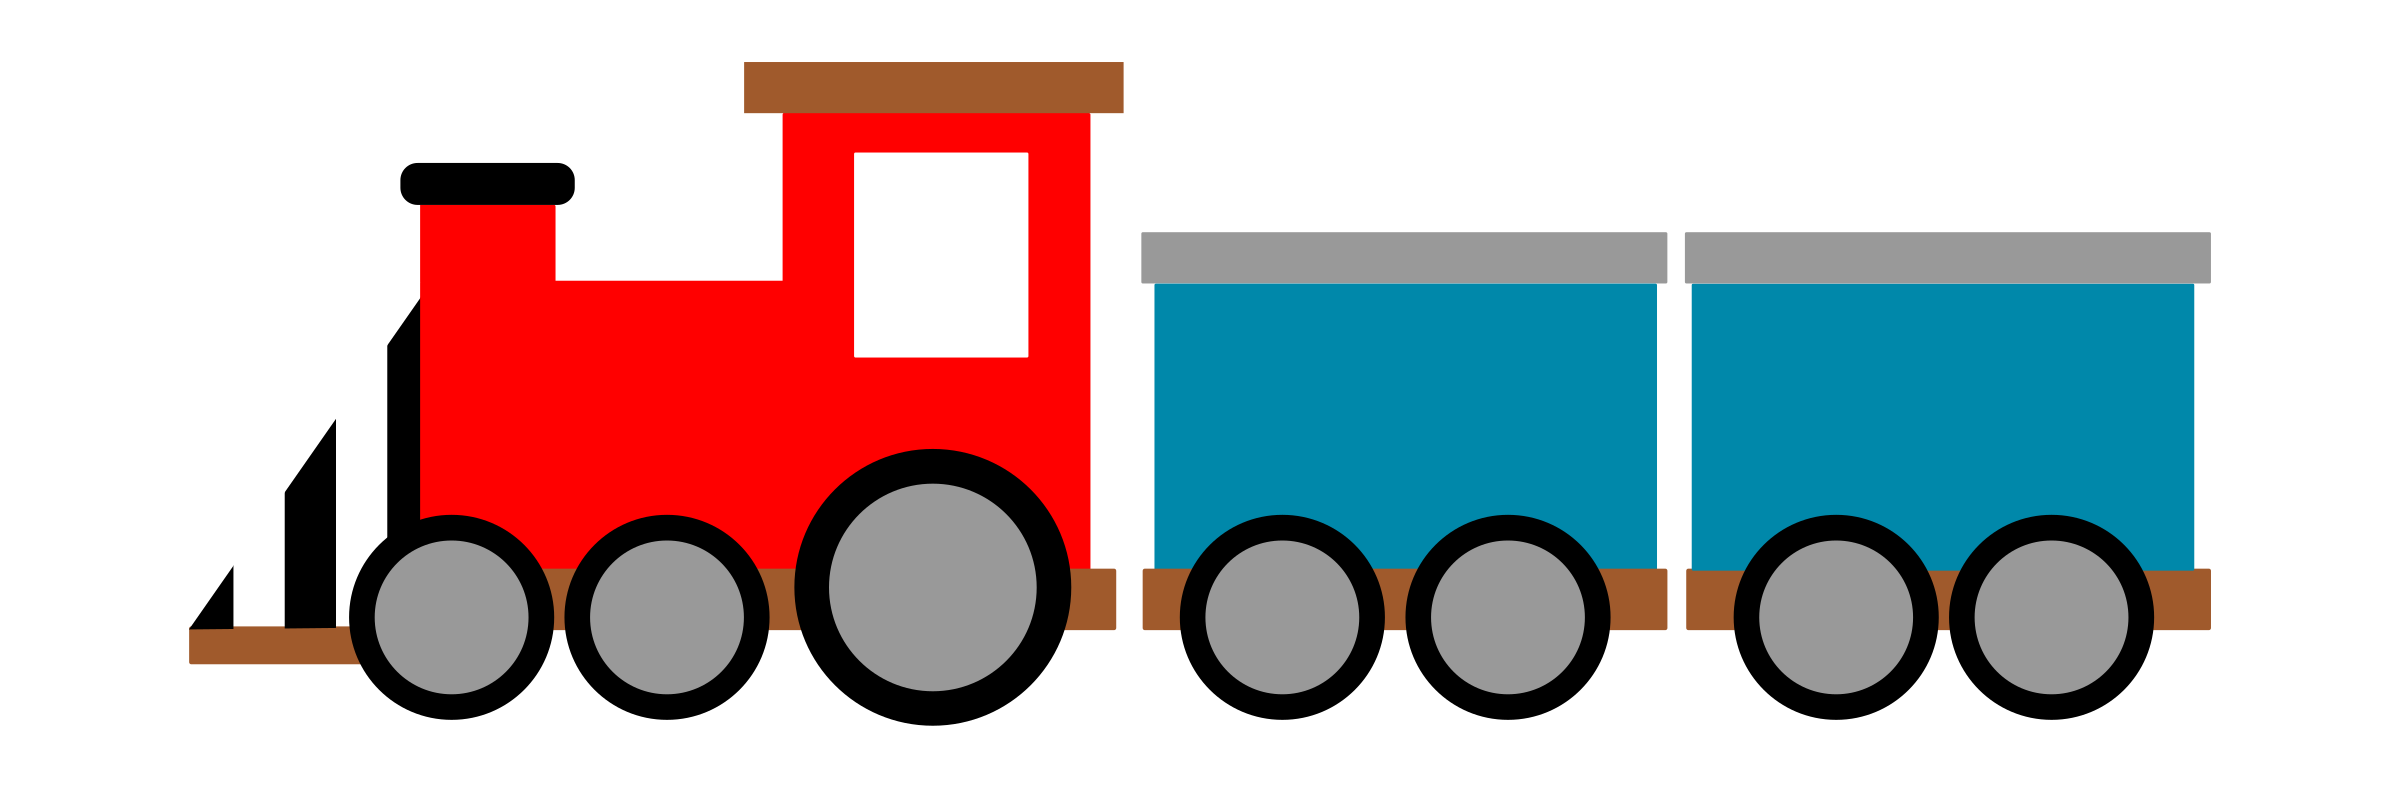 Free thomas the train clipart image library Thomas The Train Clipart | Free download best Thomas The Train ... image library